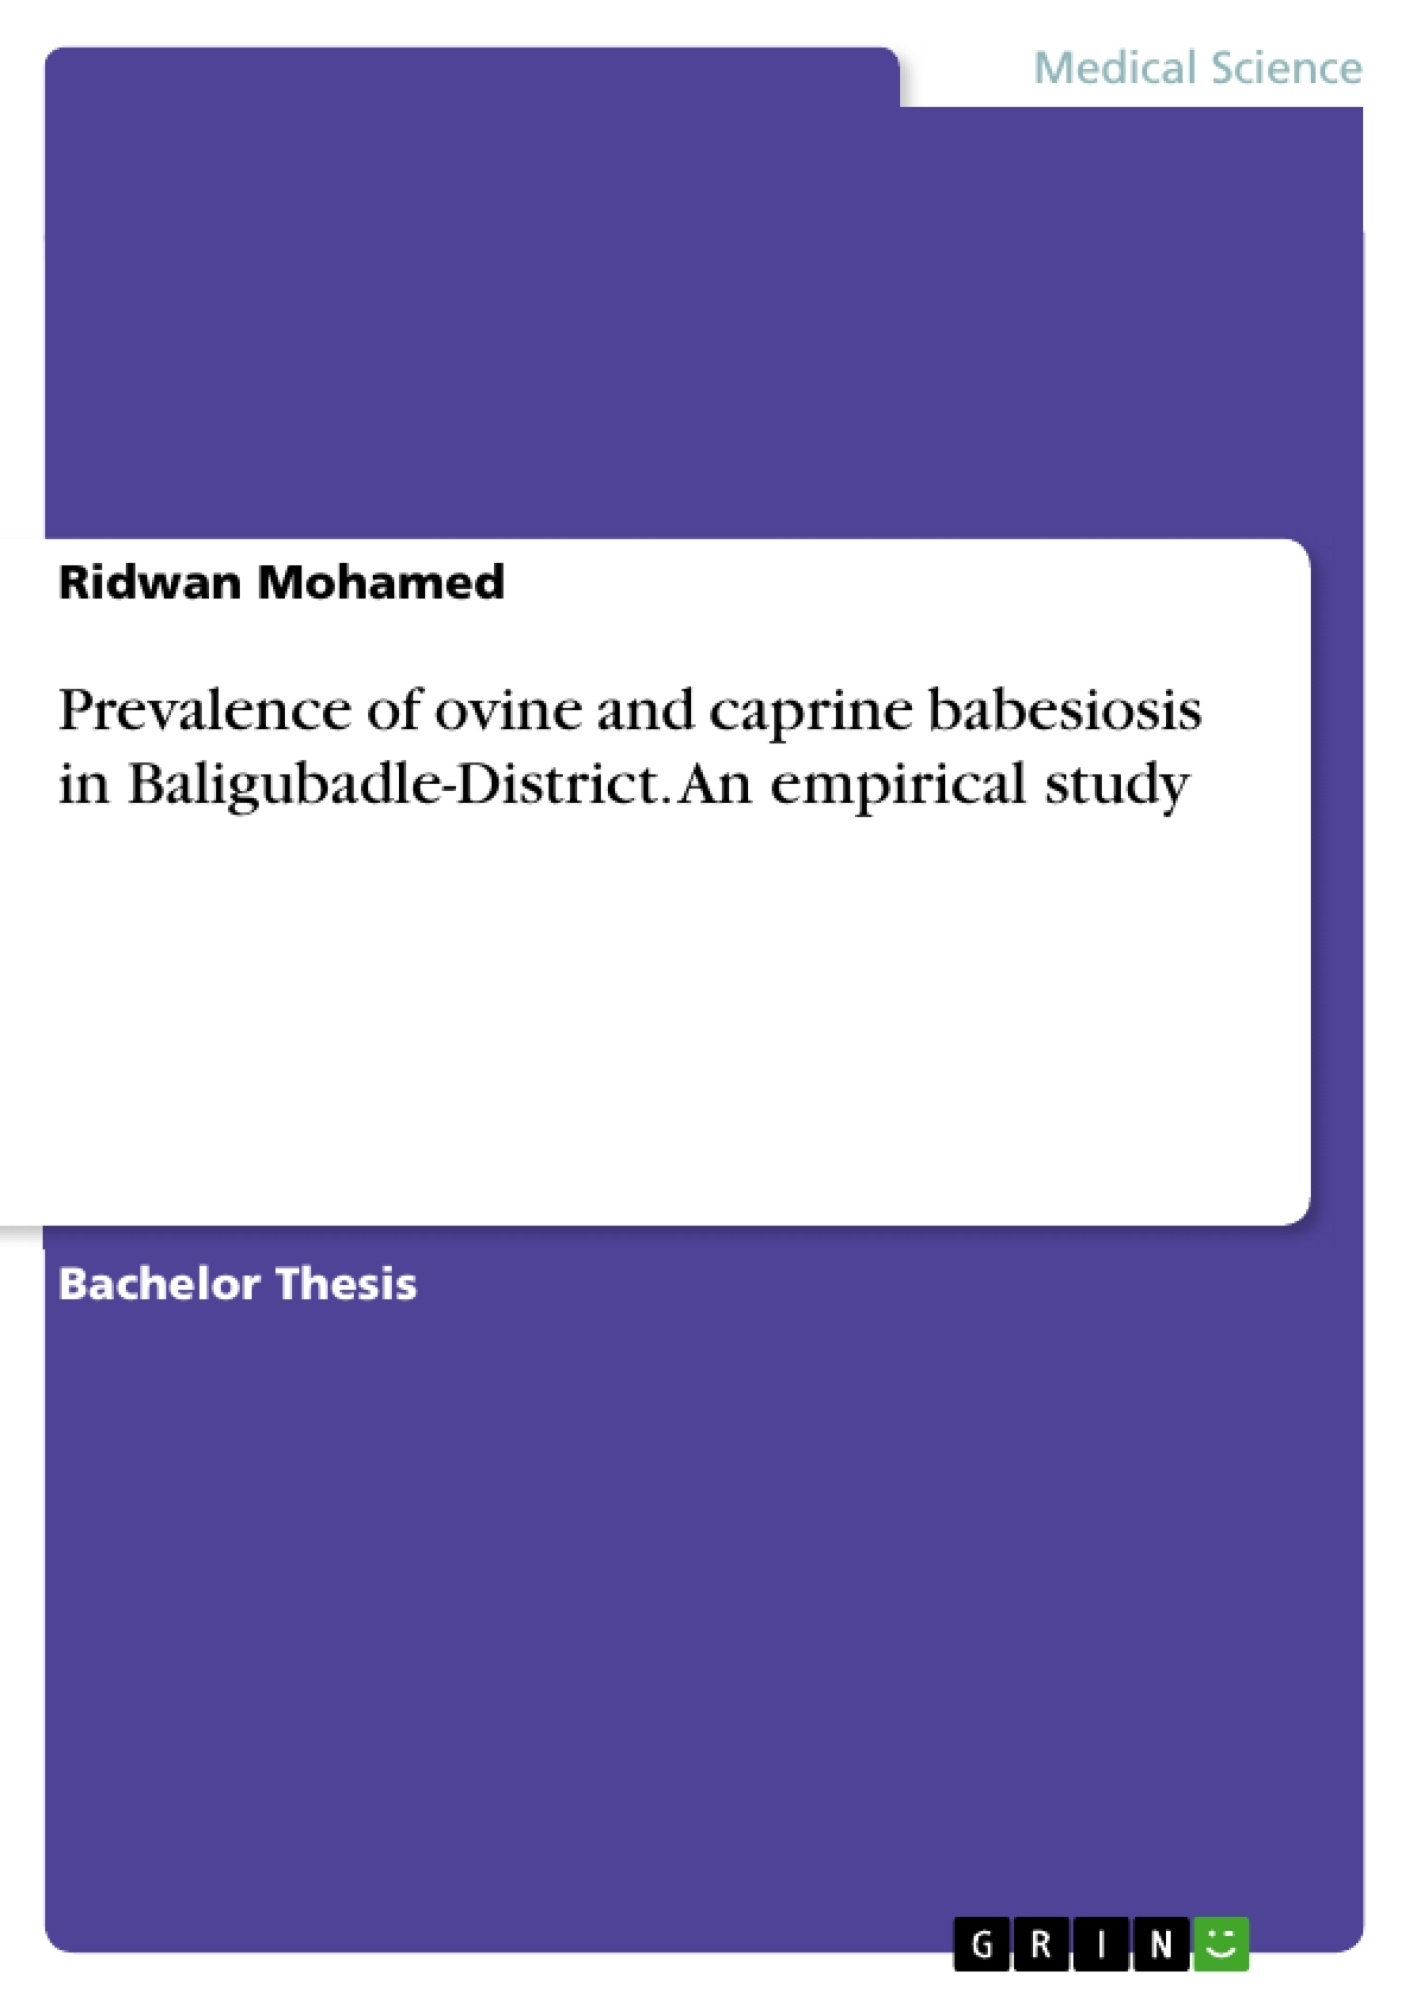 Title: Prevalence of ovine and caprine babesiosis in Baligubadle-District. An empirical study